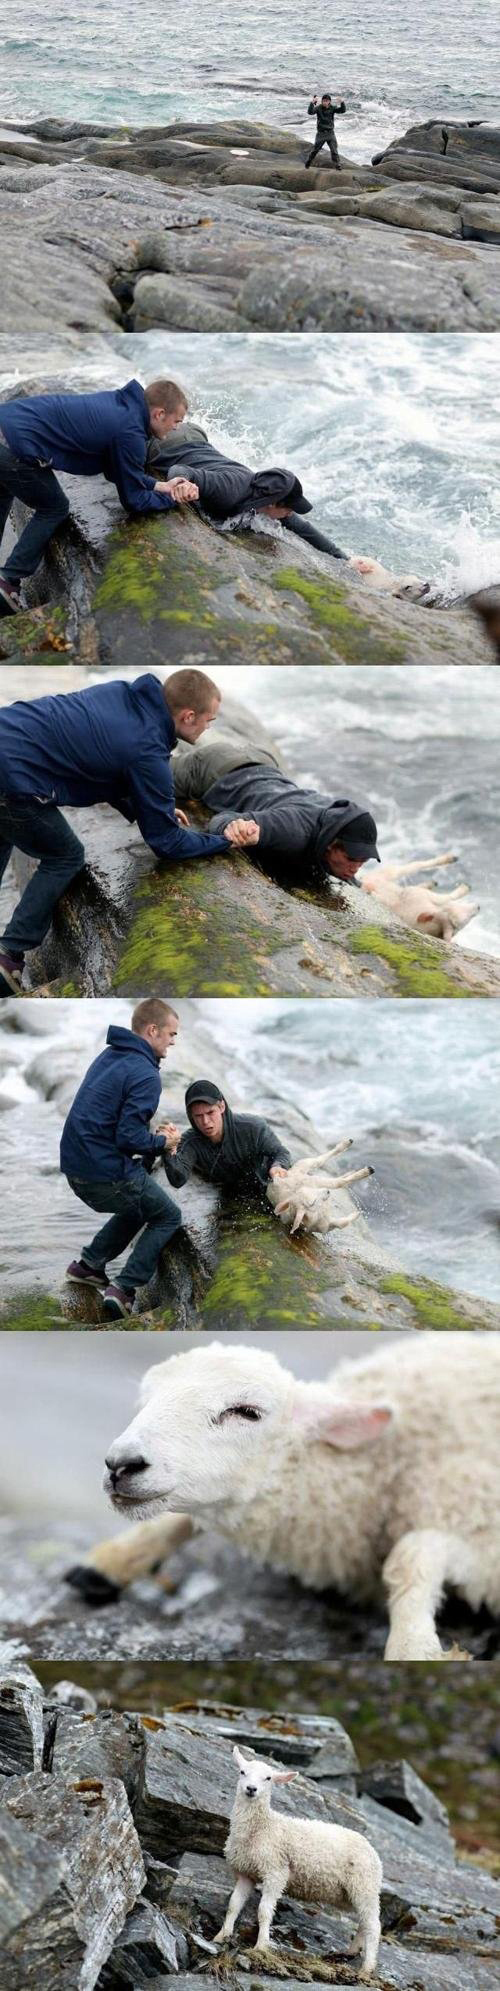 gens sauvant des animaux 3.-This-picture-of-two-Norwegian-guys-rescuing-a-sheep-from-the-ocean